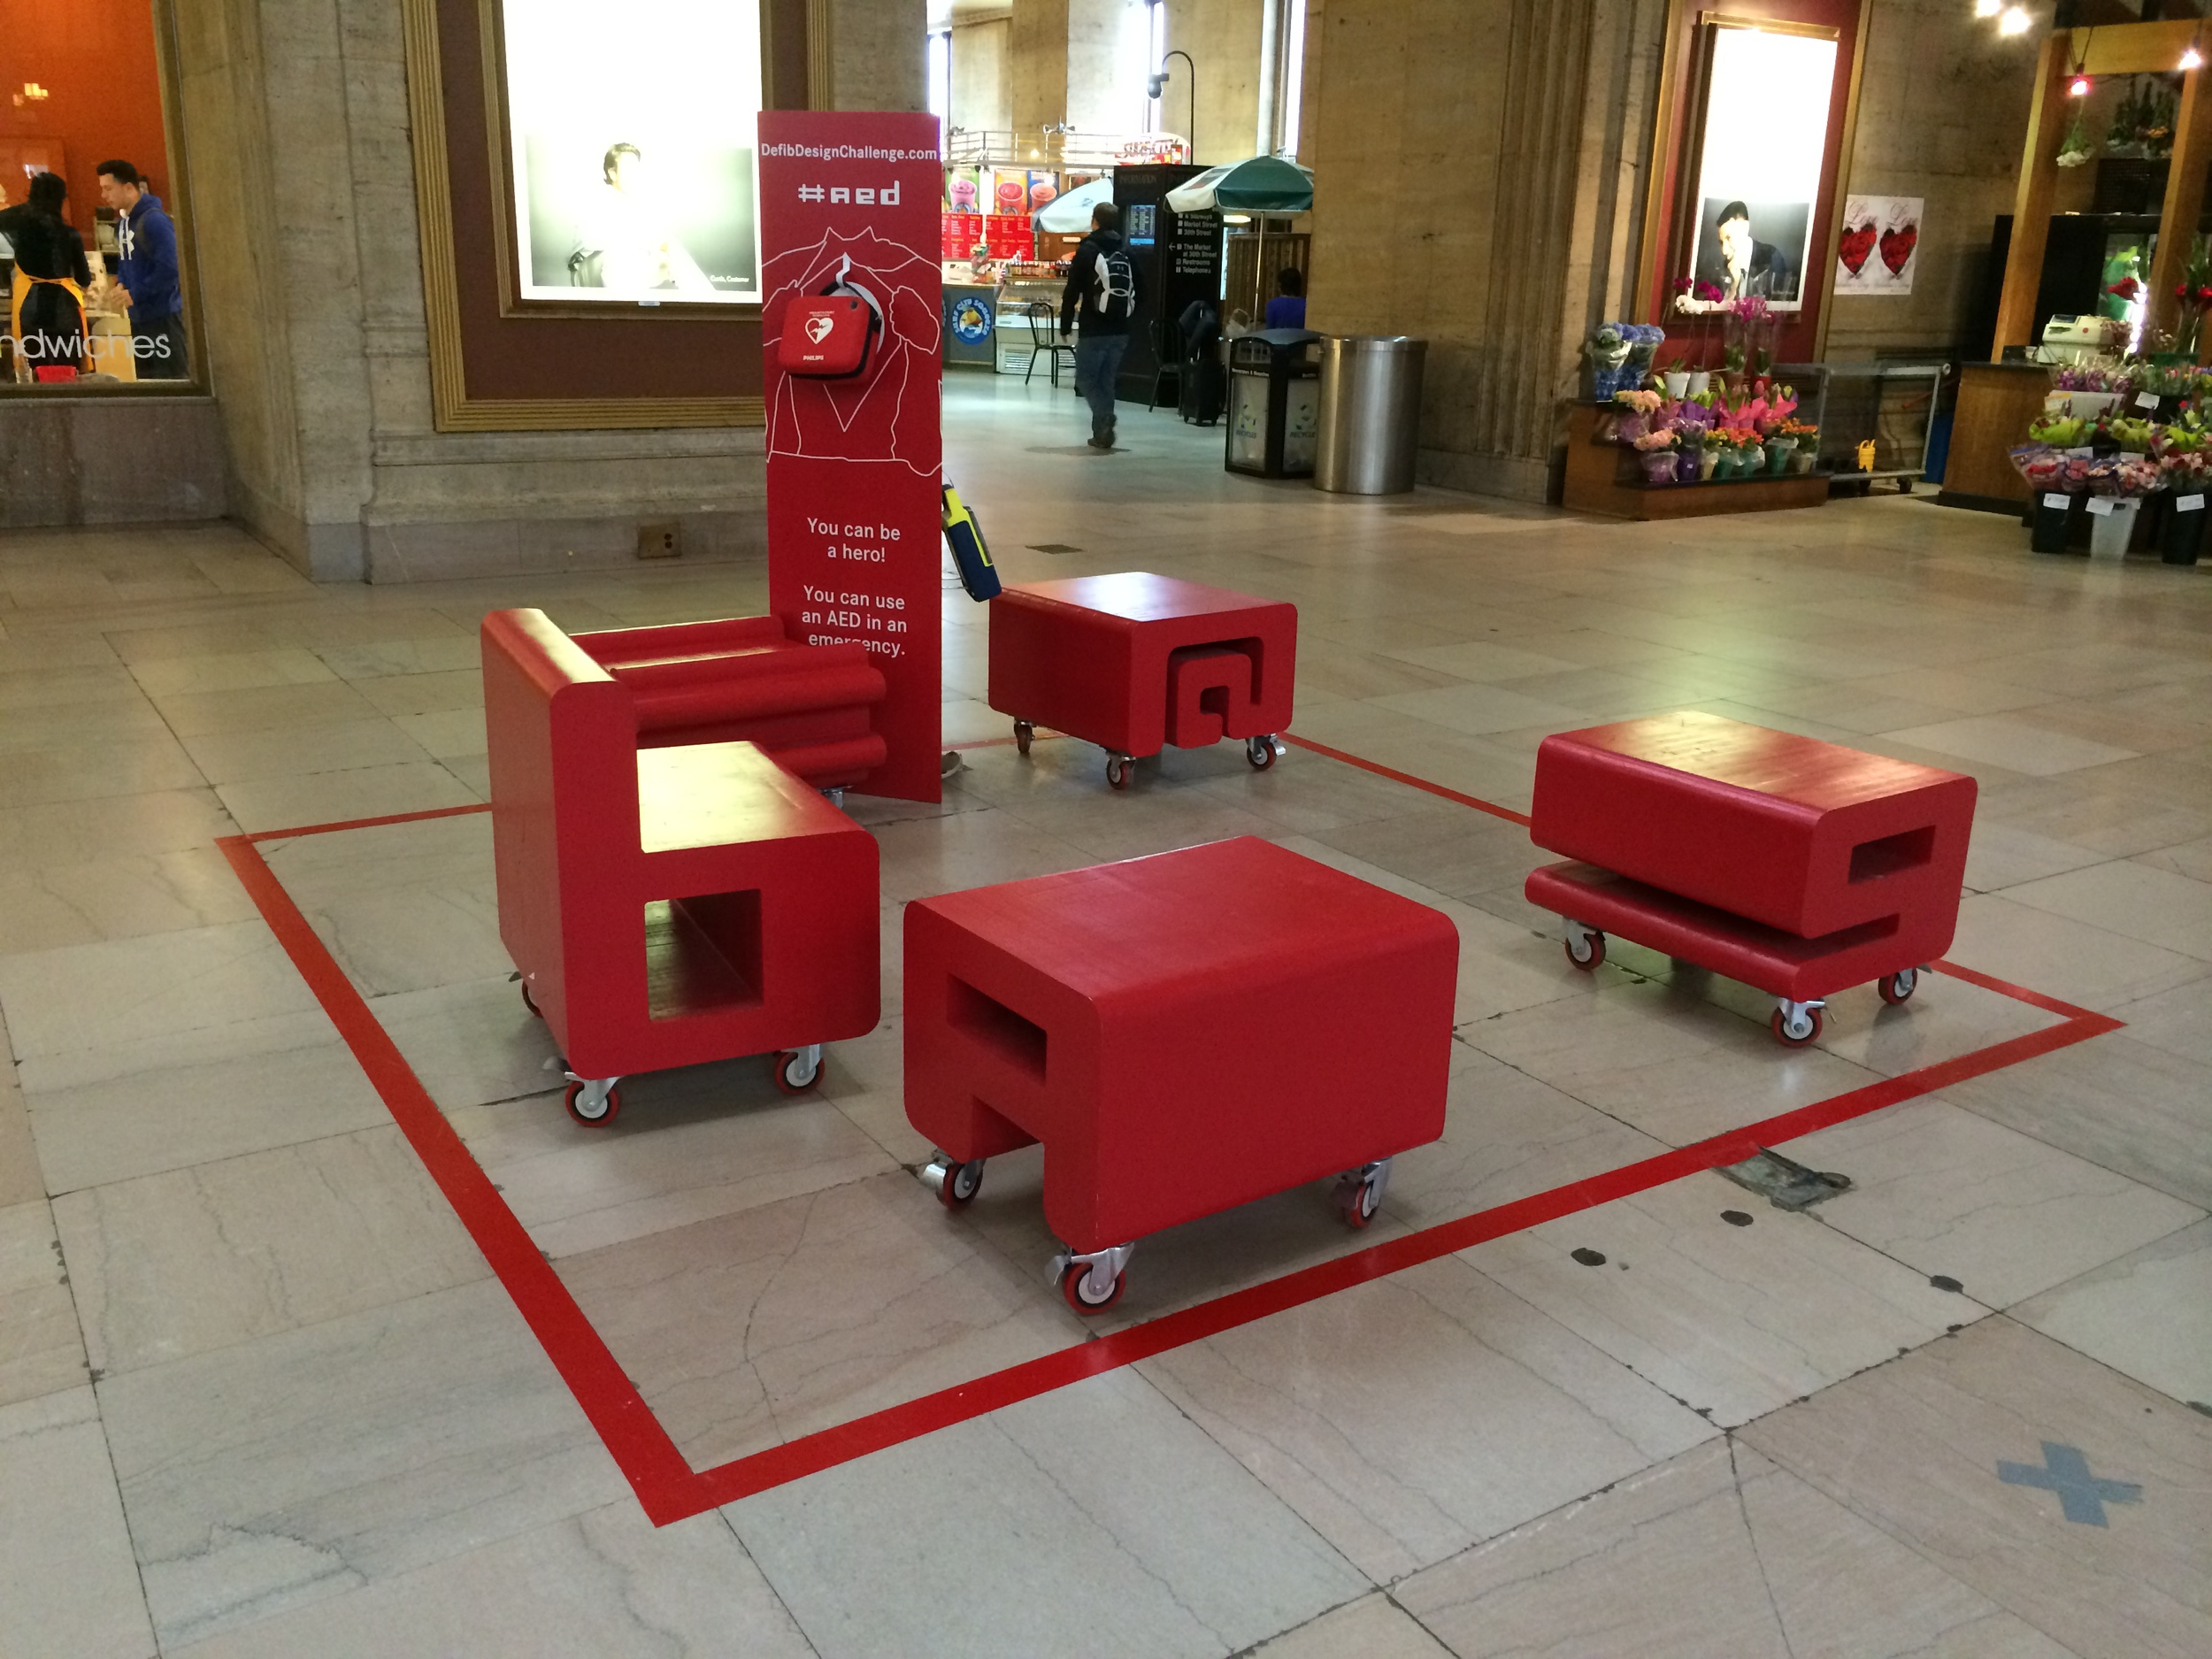 AED art exhibit at Philadelphia's 30th Street Station, shot March 22, 2014.